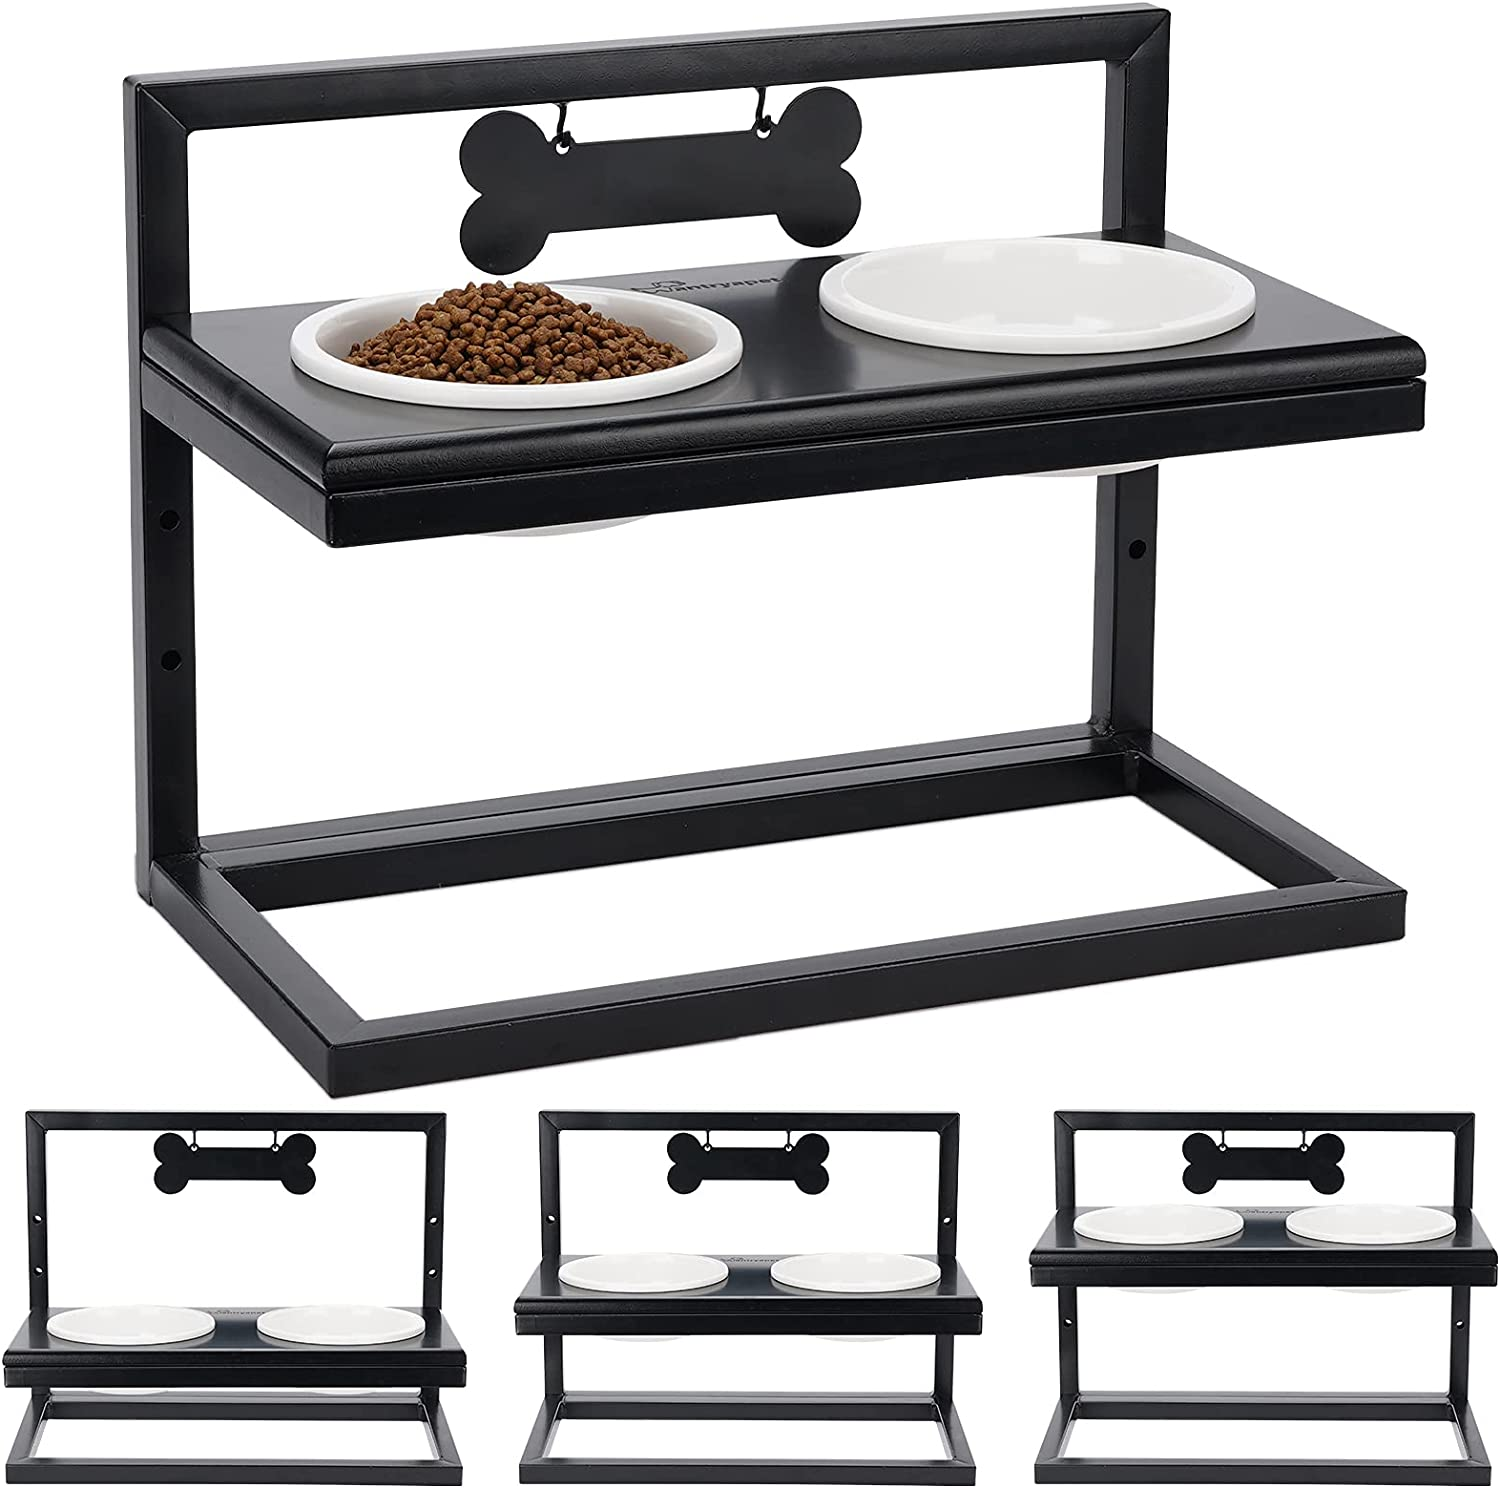 WANTRYAPET Elevated Dog Feeder Bowls Adjustable 3 Heights, Premium Break-Resistant Food Water Bowls, Raise Pet Feeder Stand with Name Tags and Marker, Perfect for Puppies, Cat, Dogs, Patented